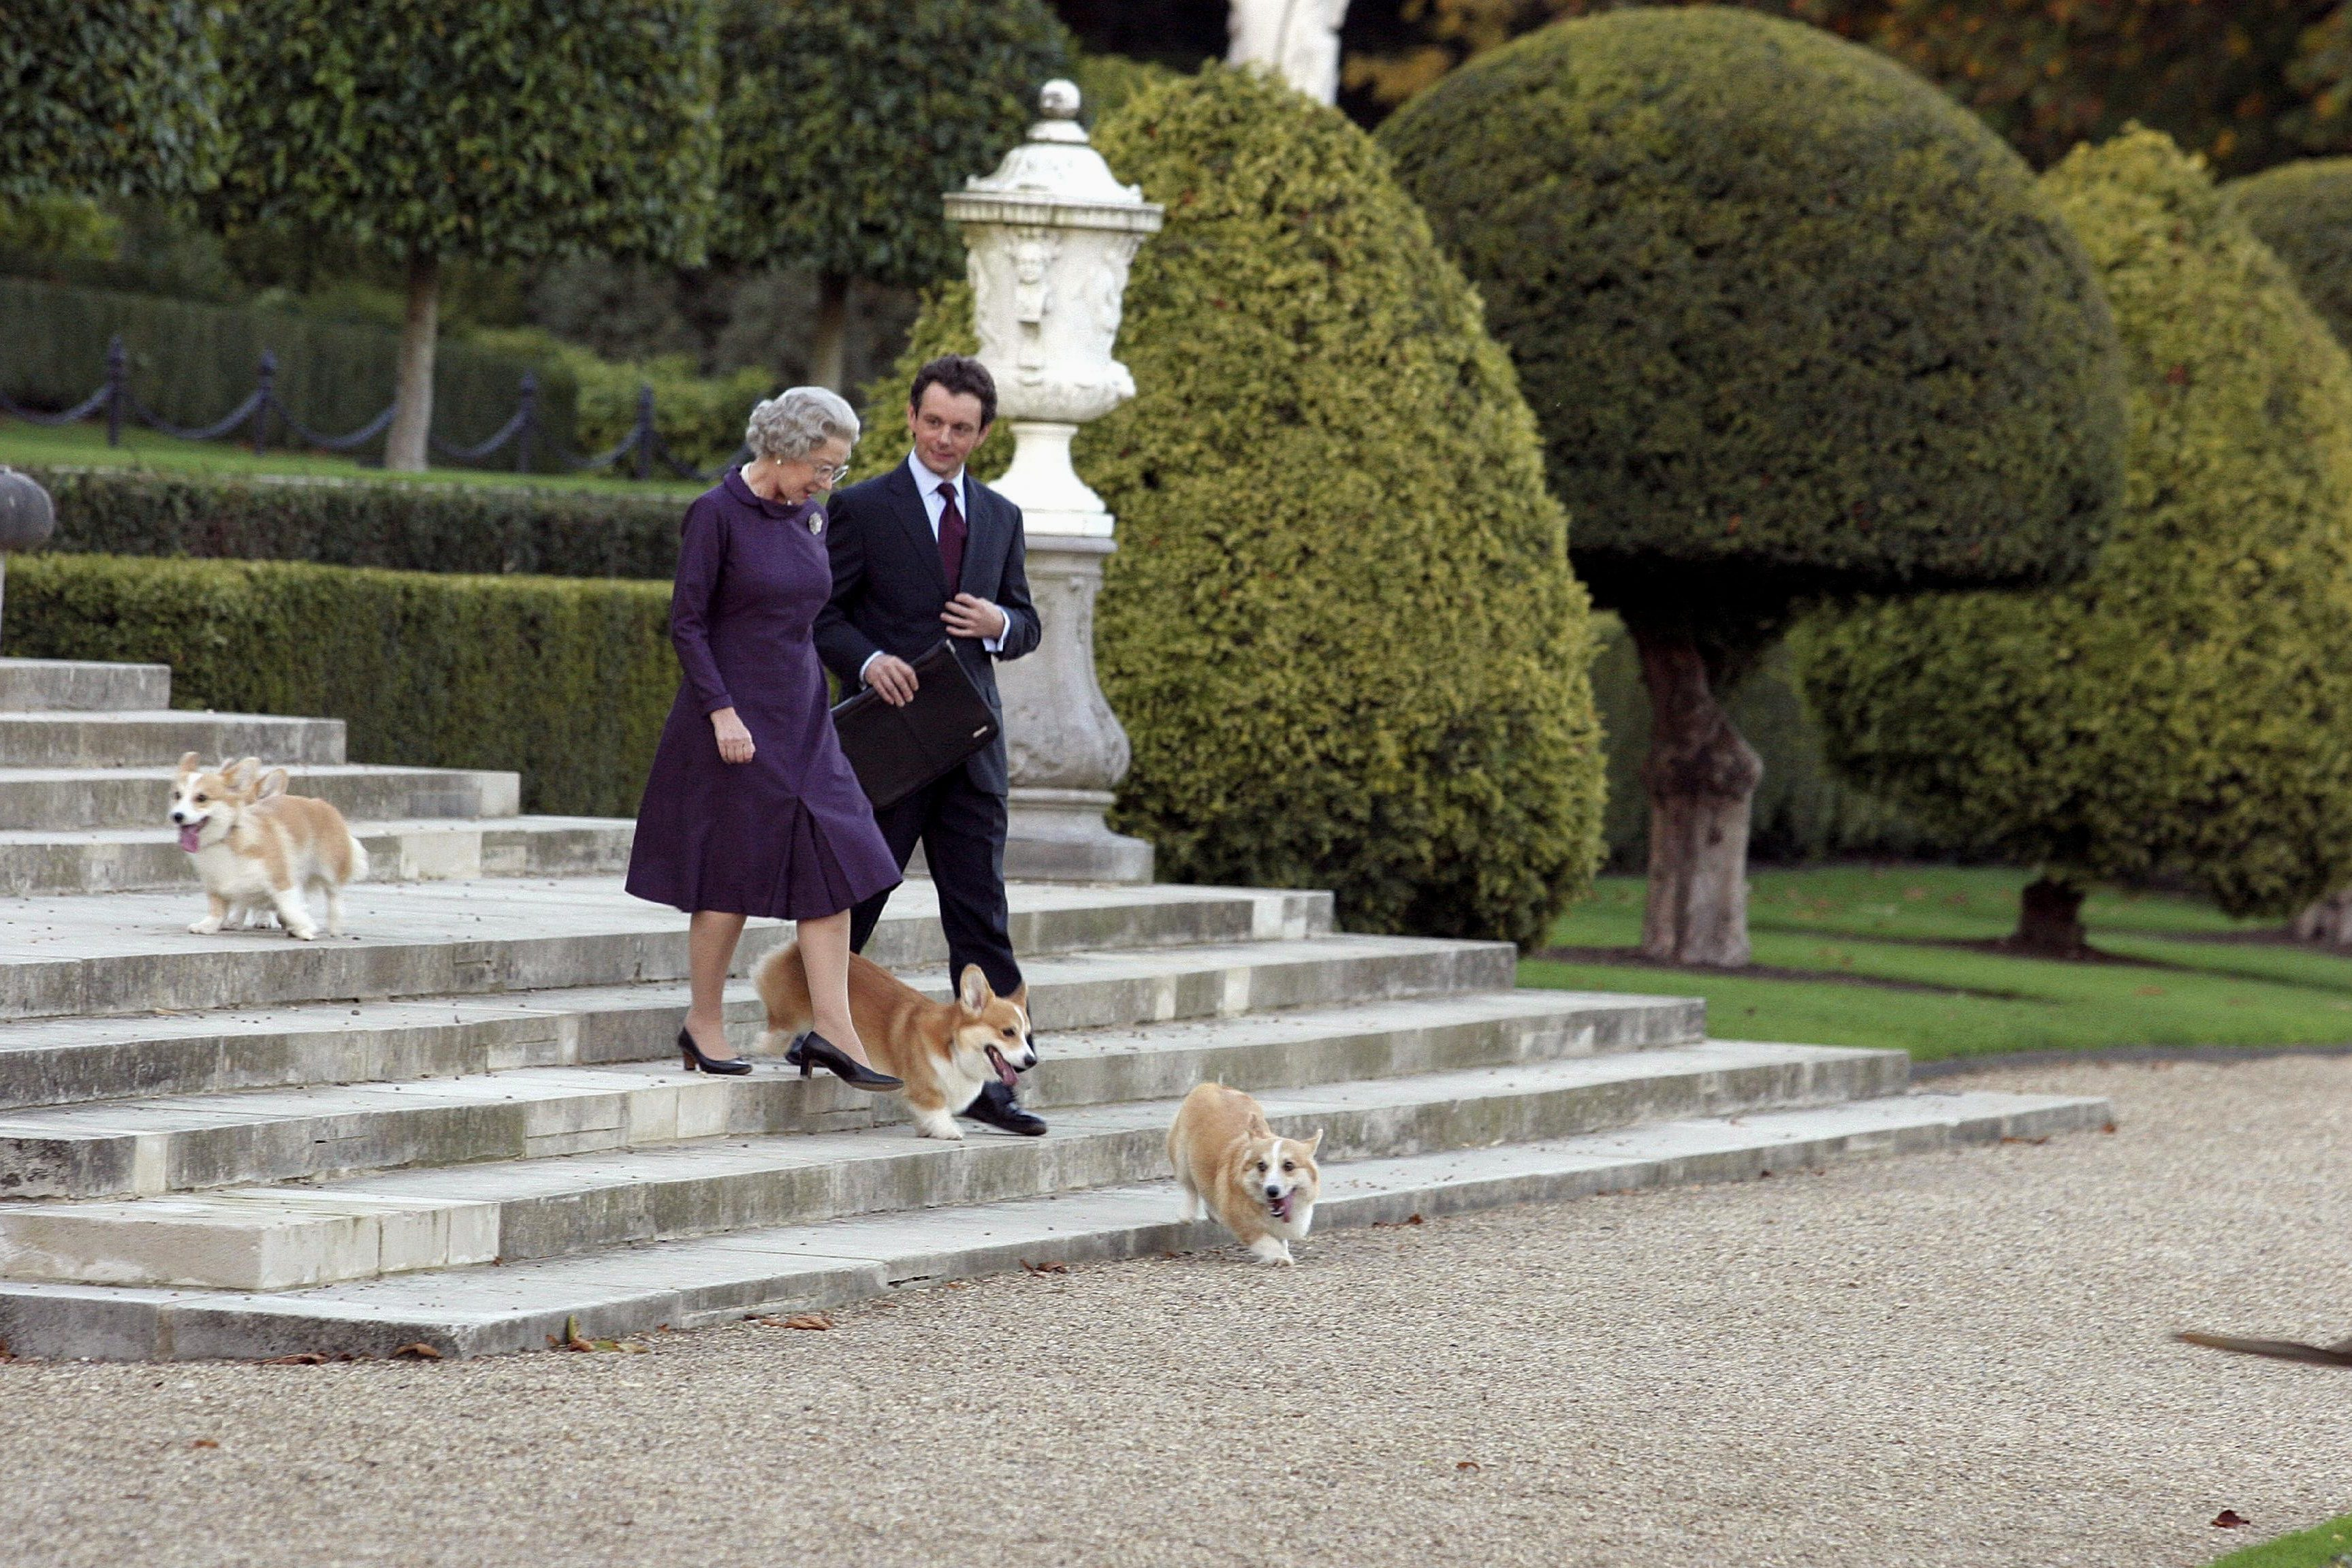 Dame Helen Mirren with Michael Sheen with corgis and a garden as part of the filming for The Queen